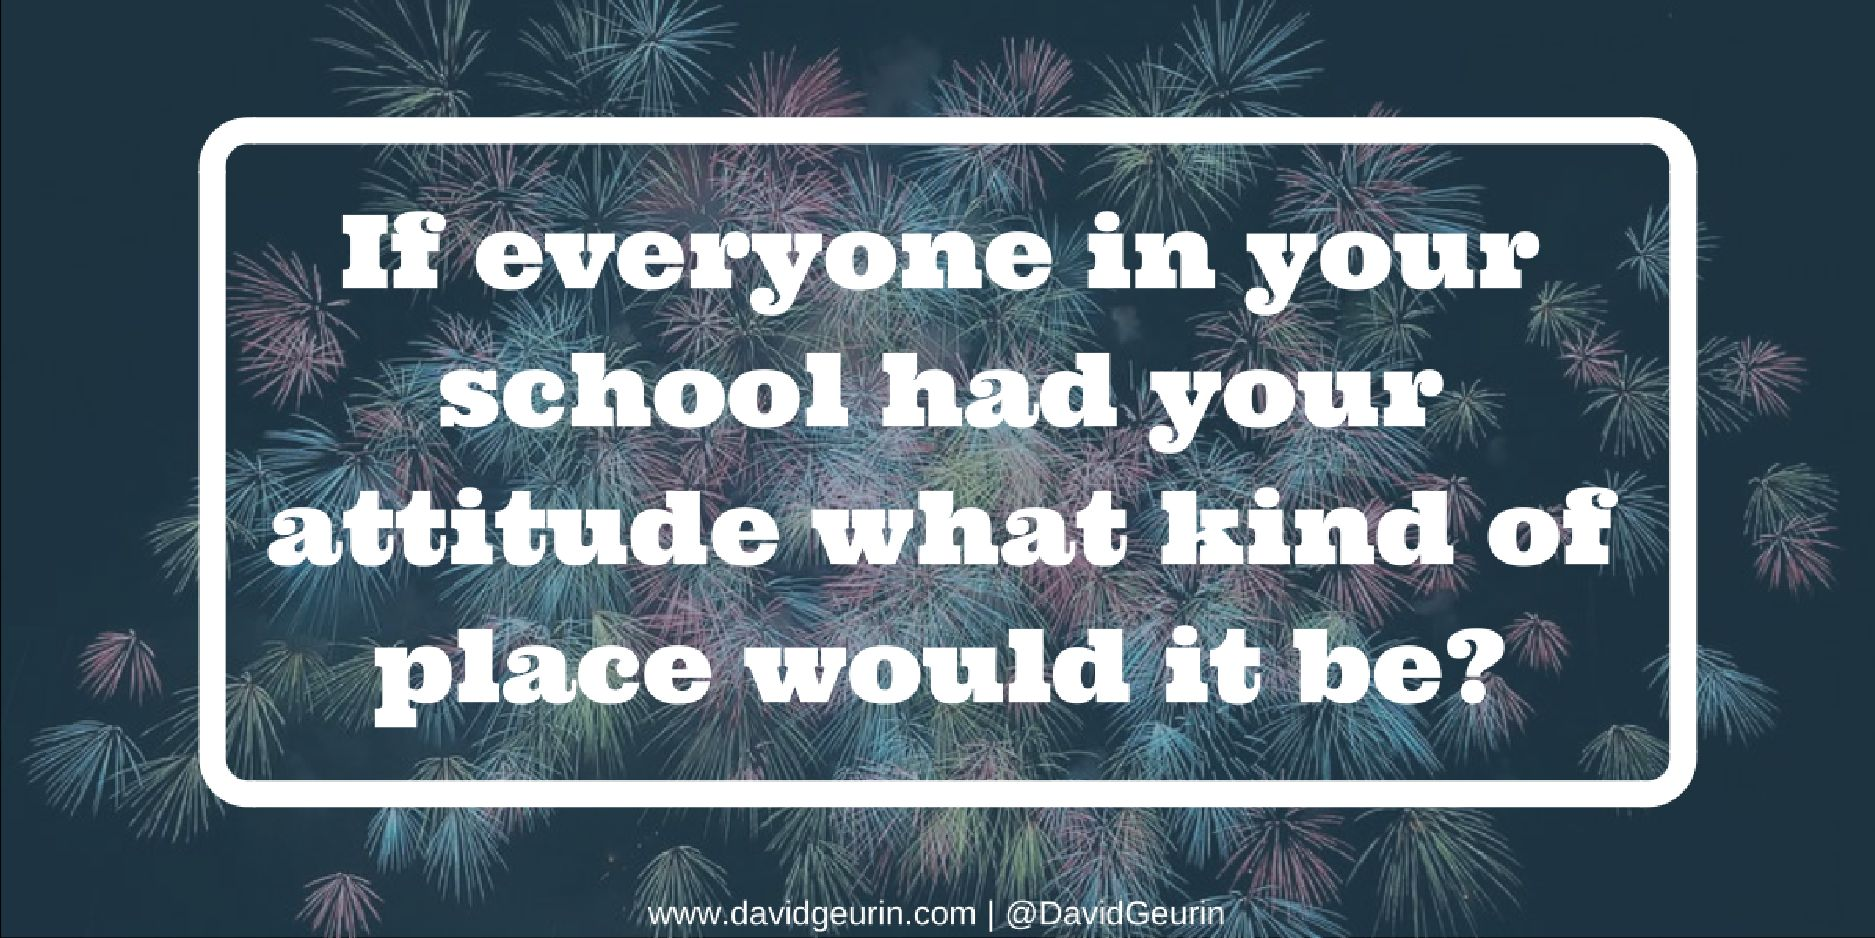 Everyone can be a leader by having a great attitude! What kind of energy are you bringing each day? #satchat #JoyfulLeaders #wgedd https://t.co/xVI6NWwPfB